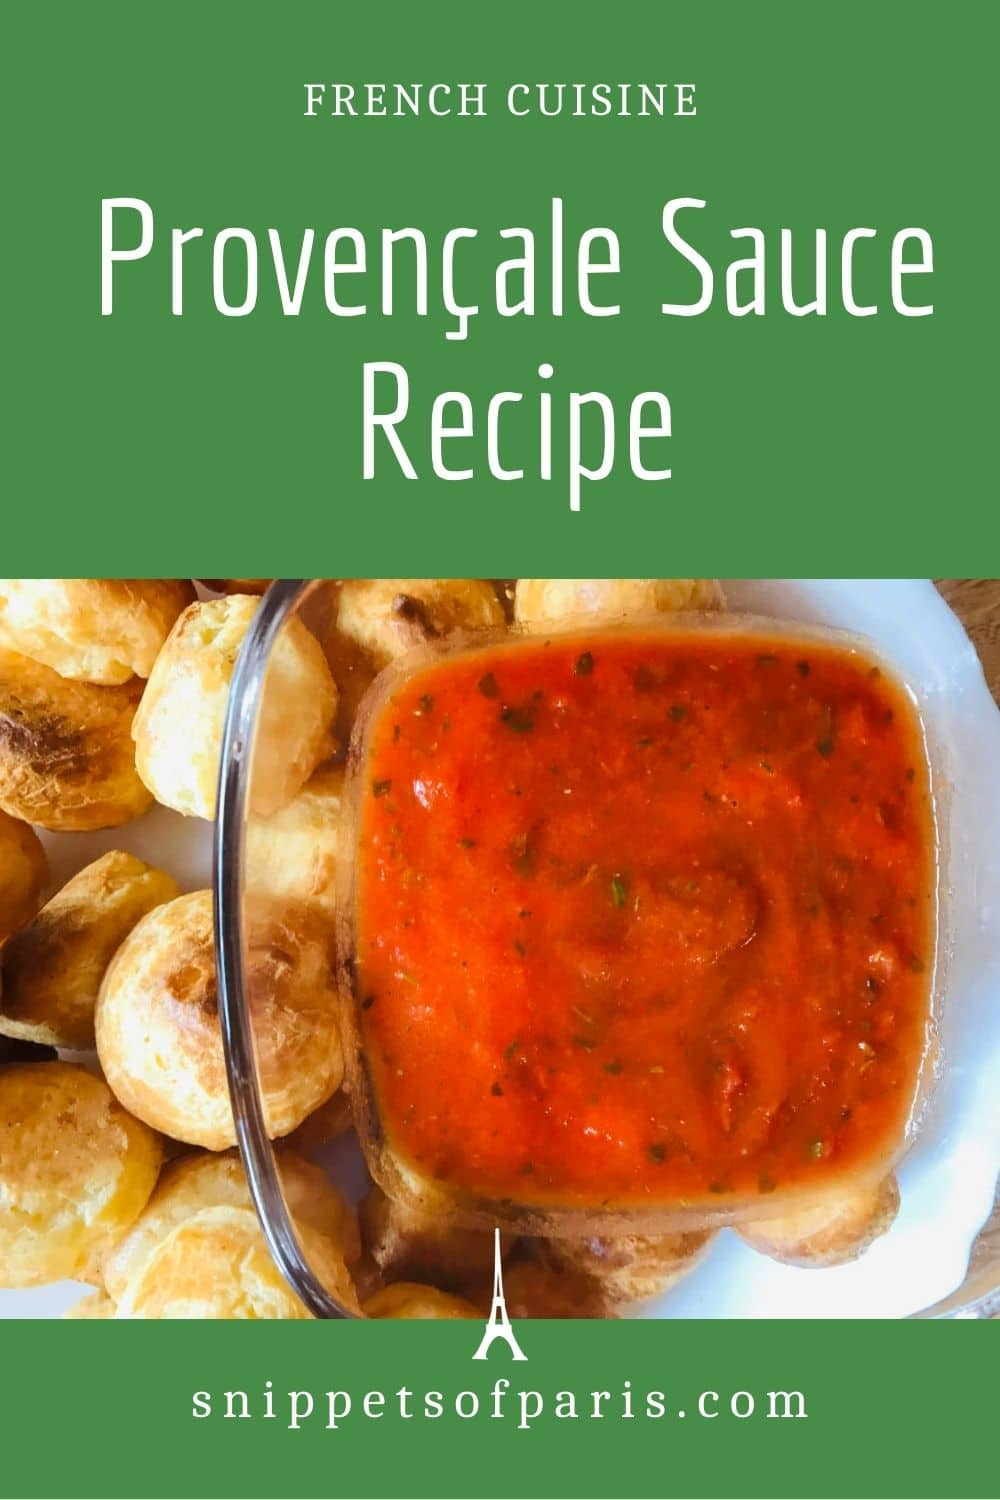 Simple Tomato Provençale sauce recipe from France